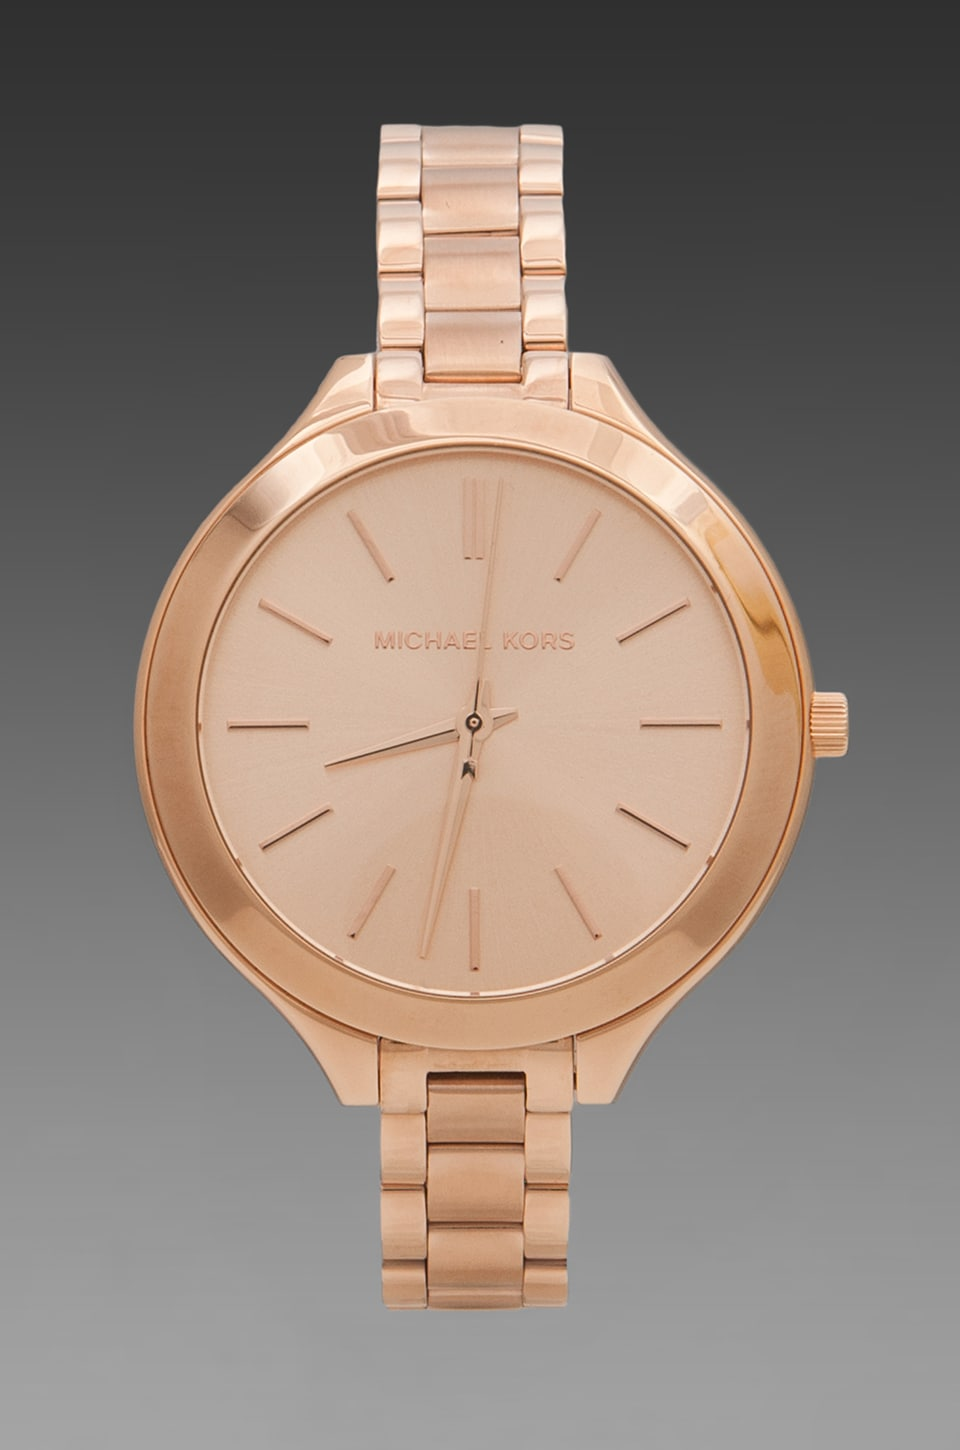 Michael Kors Slim Runway Watch in Rosegold